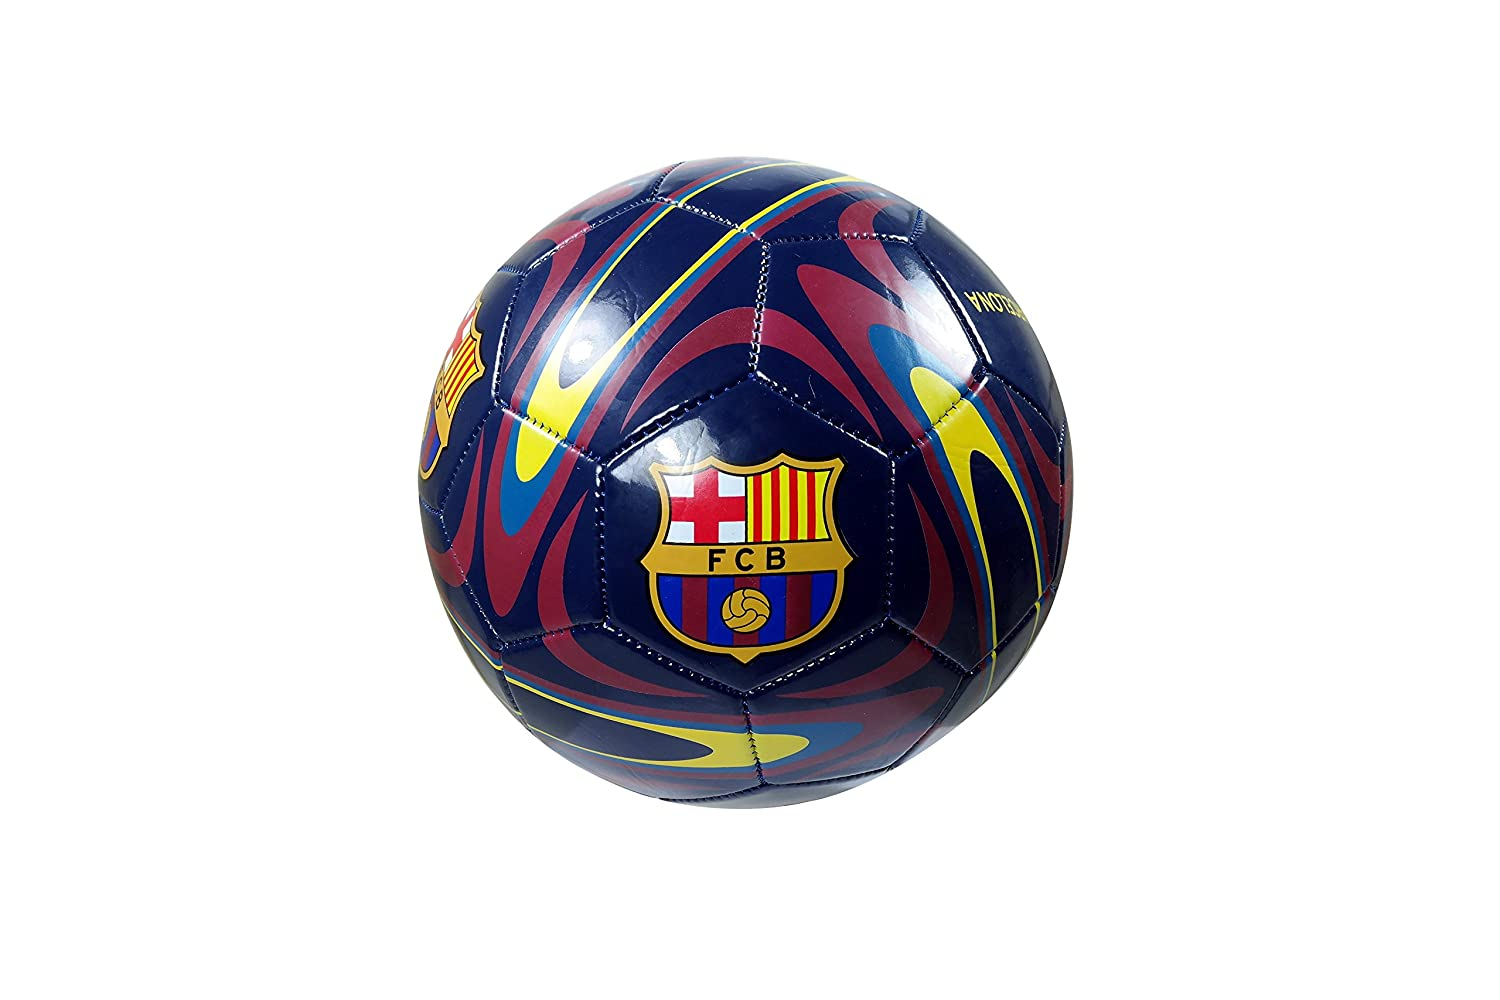 FC Barcelona Authentic Official Licensedサッカーボールサイズ5 – 10 – 6 B077P12XLN